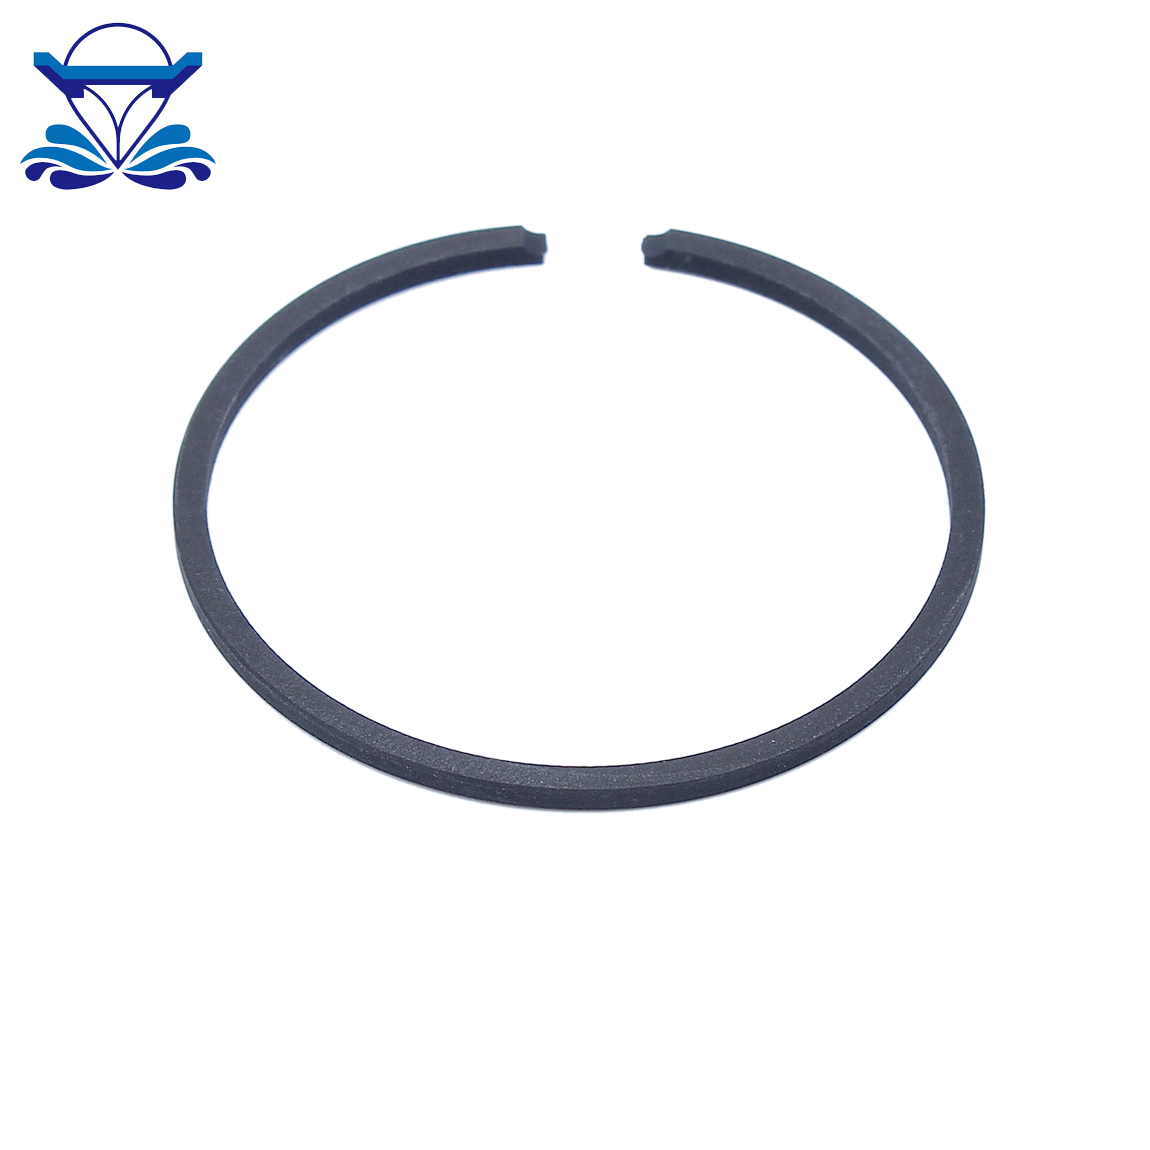 38mm X 1.5mm Piston Ring For Chainsaw Strimmer Hedgetrimmer